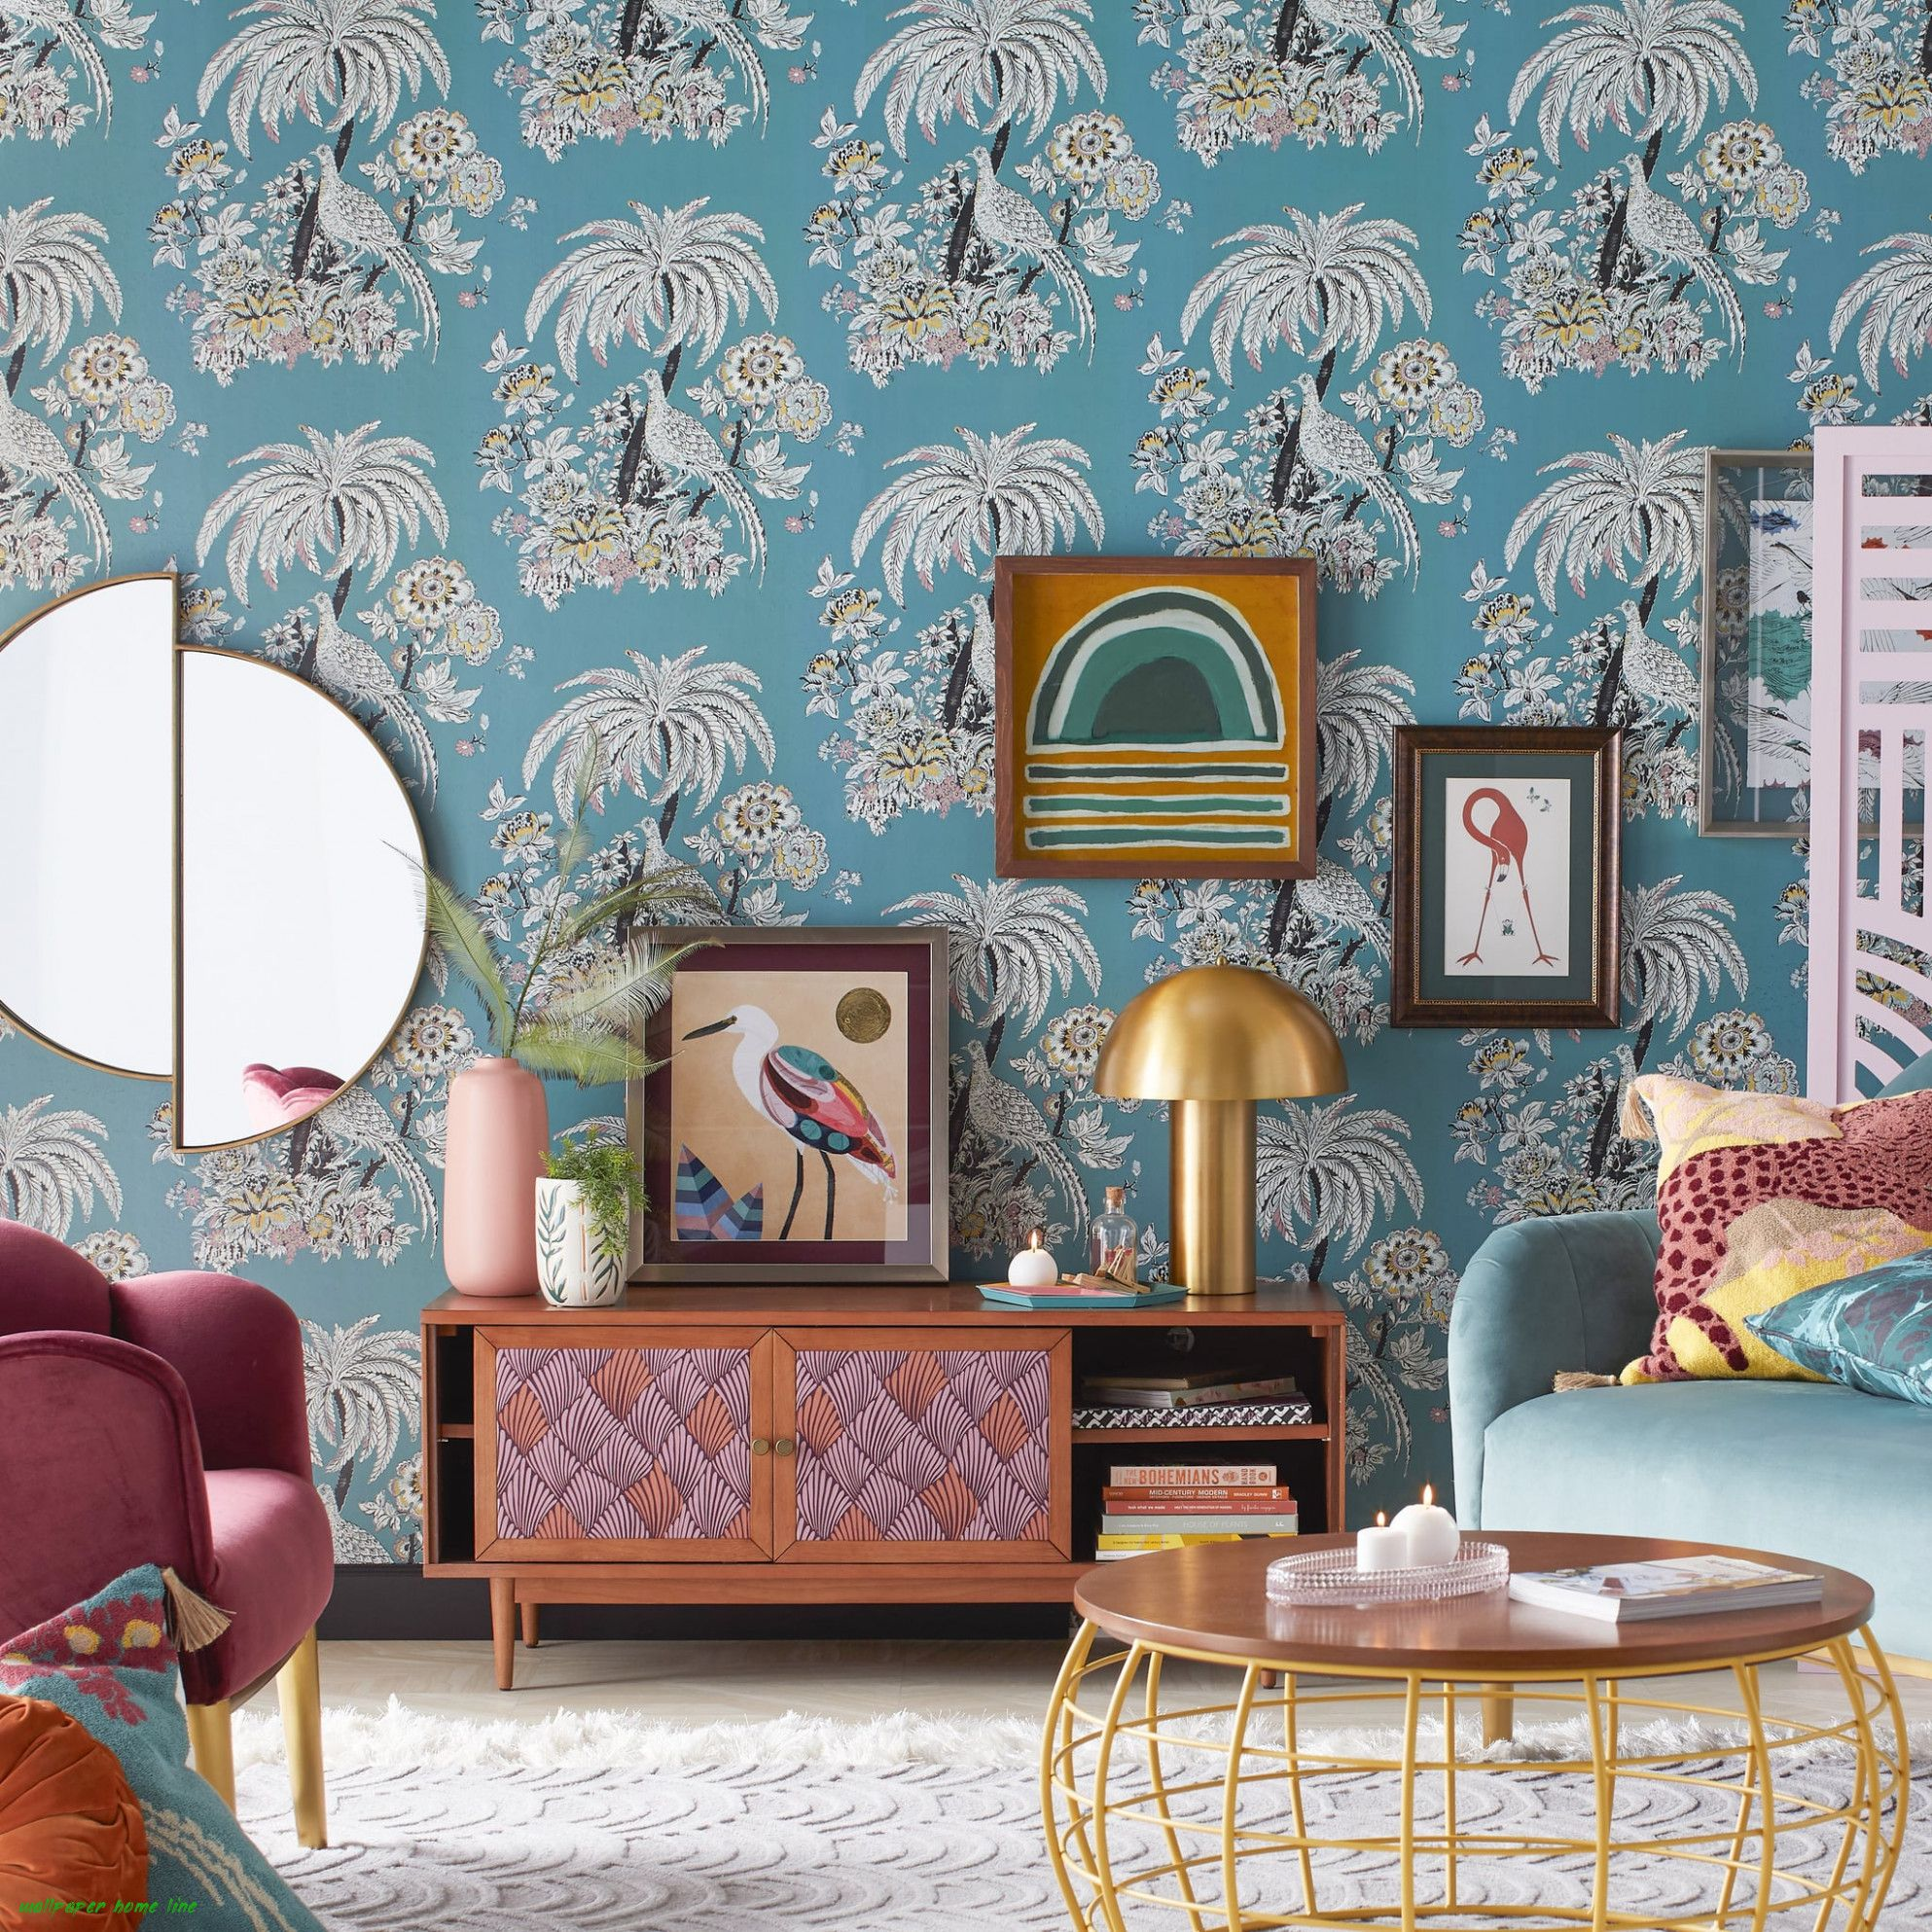 This Is Why Wallpaper Home Line Is So Famous Wallpaper Home Line Https Www Flowernifty Com This In 2020 Home Decor Peel And Stick Wallpaper Wallpaper Living Room